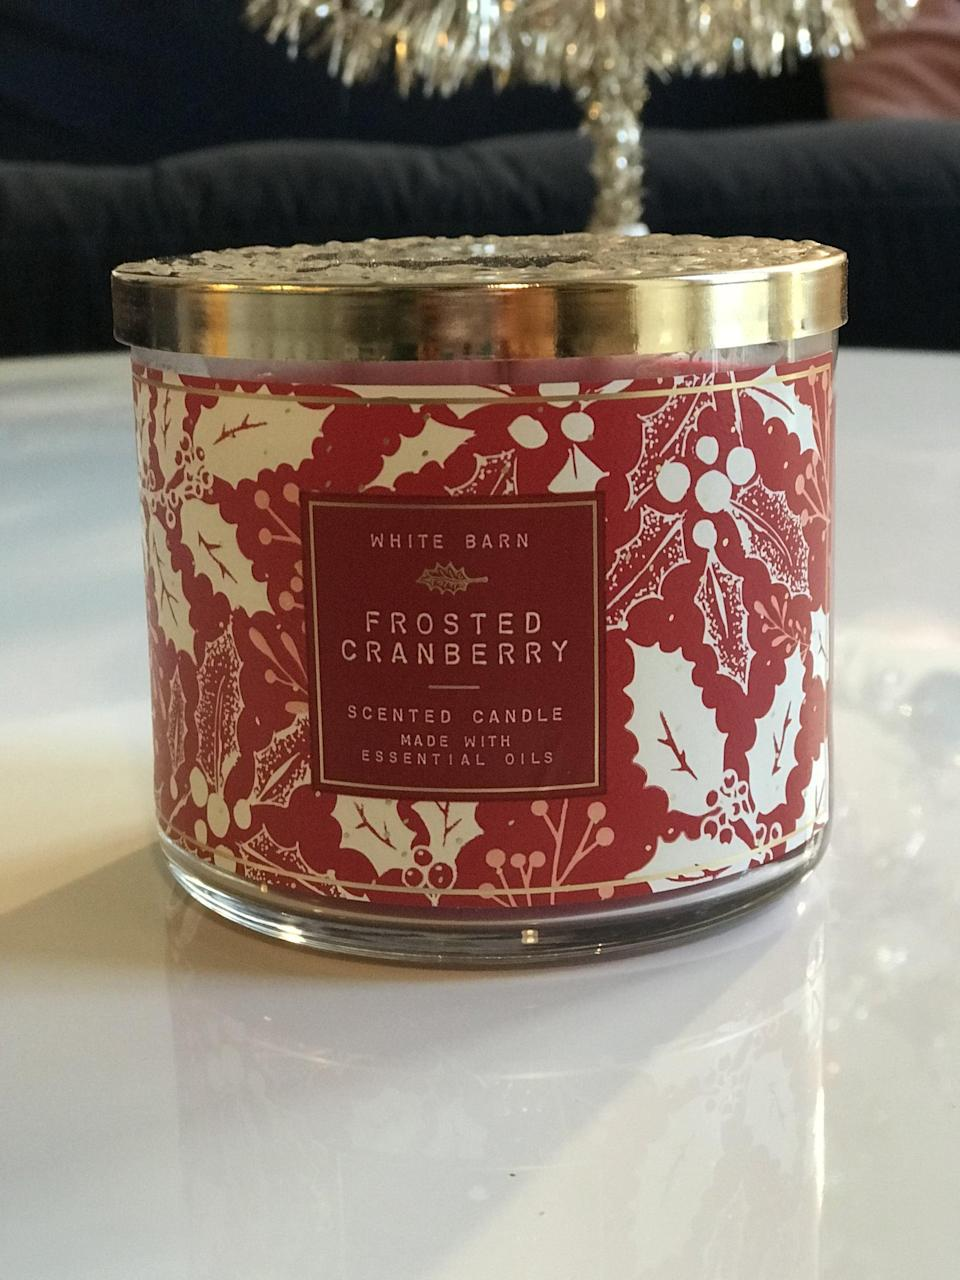 <p><span>Frosted Cranberry 3-Wick Candle</span> ($15, originally $25)</p> <p><strong>What It Smells Like:</strong> Cranberries dipped in sugar.</p>